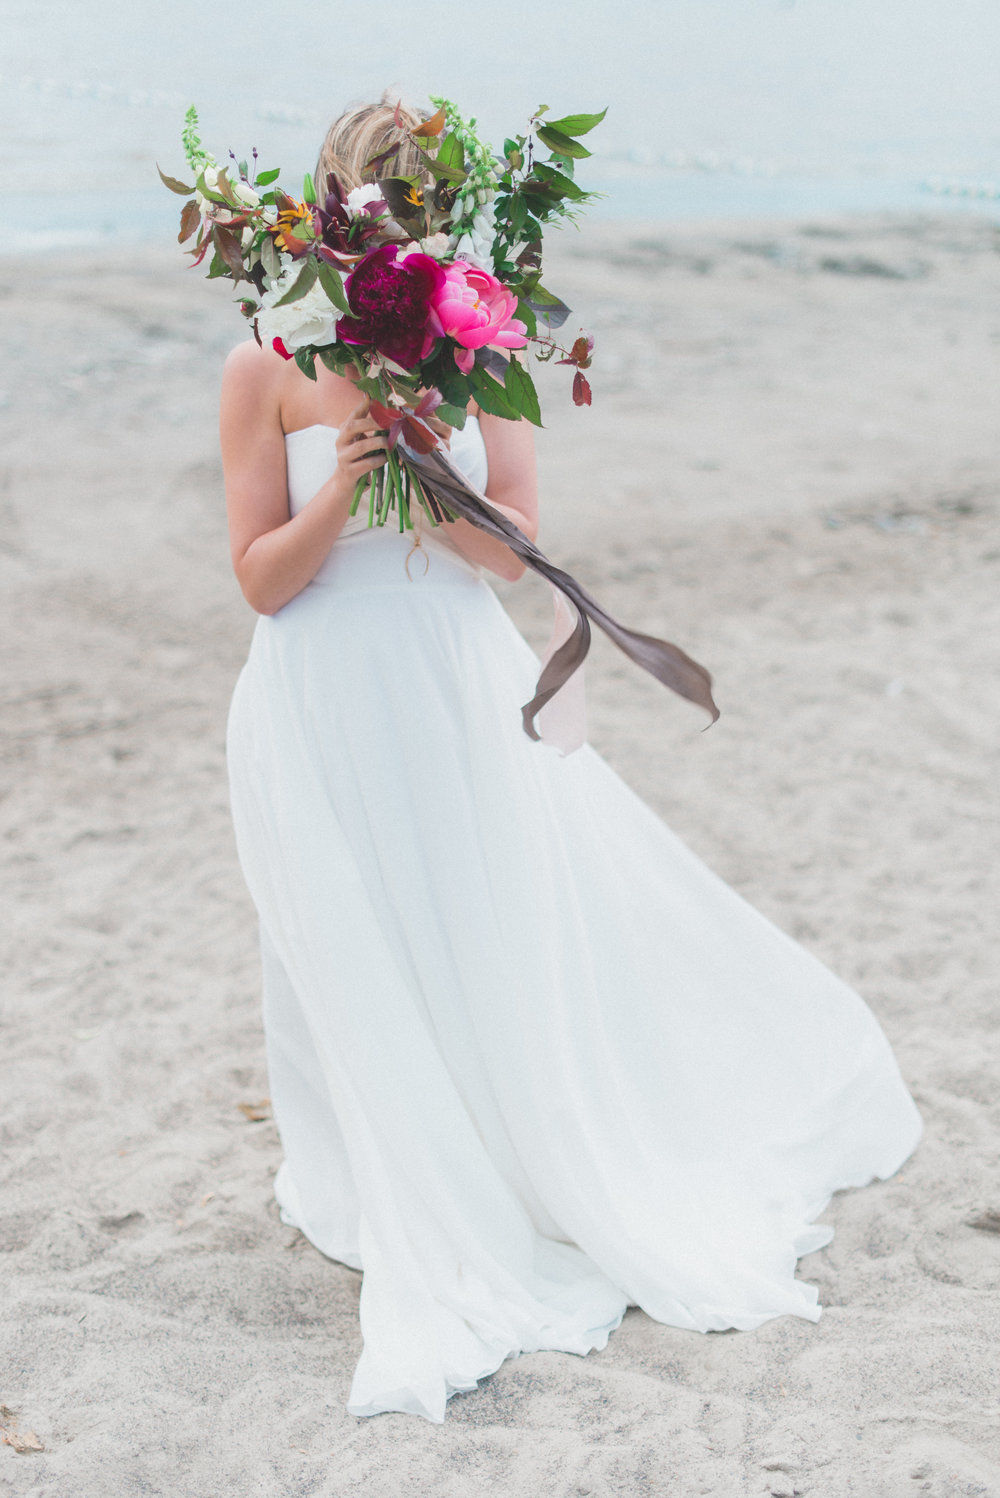 Toast Events Boho Picnic Elopement, Laura Kelly Photography. Presh Floral. The Handmade Bride